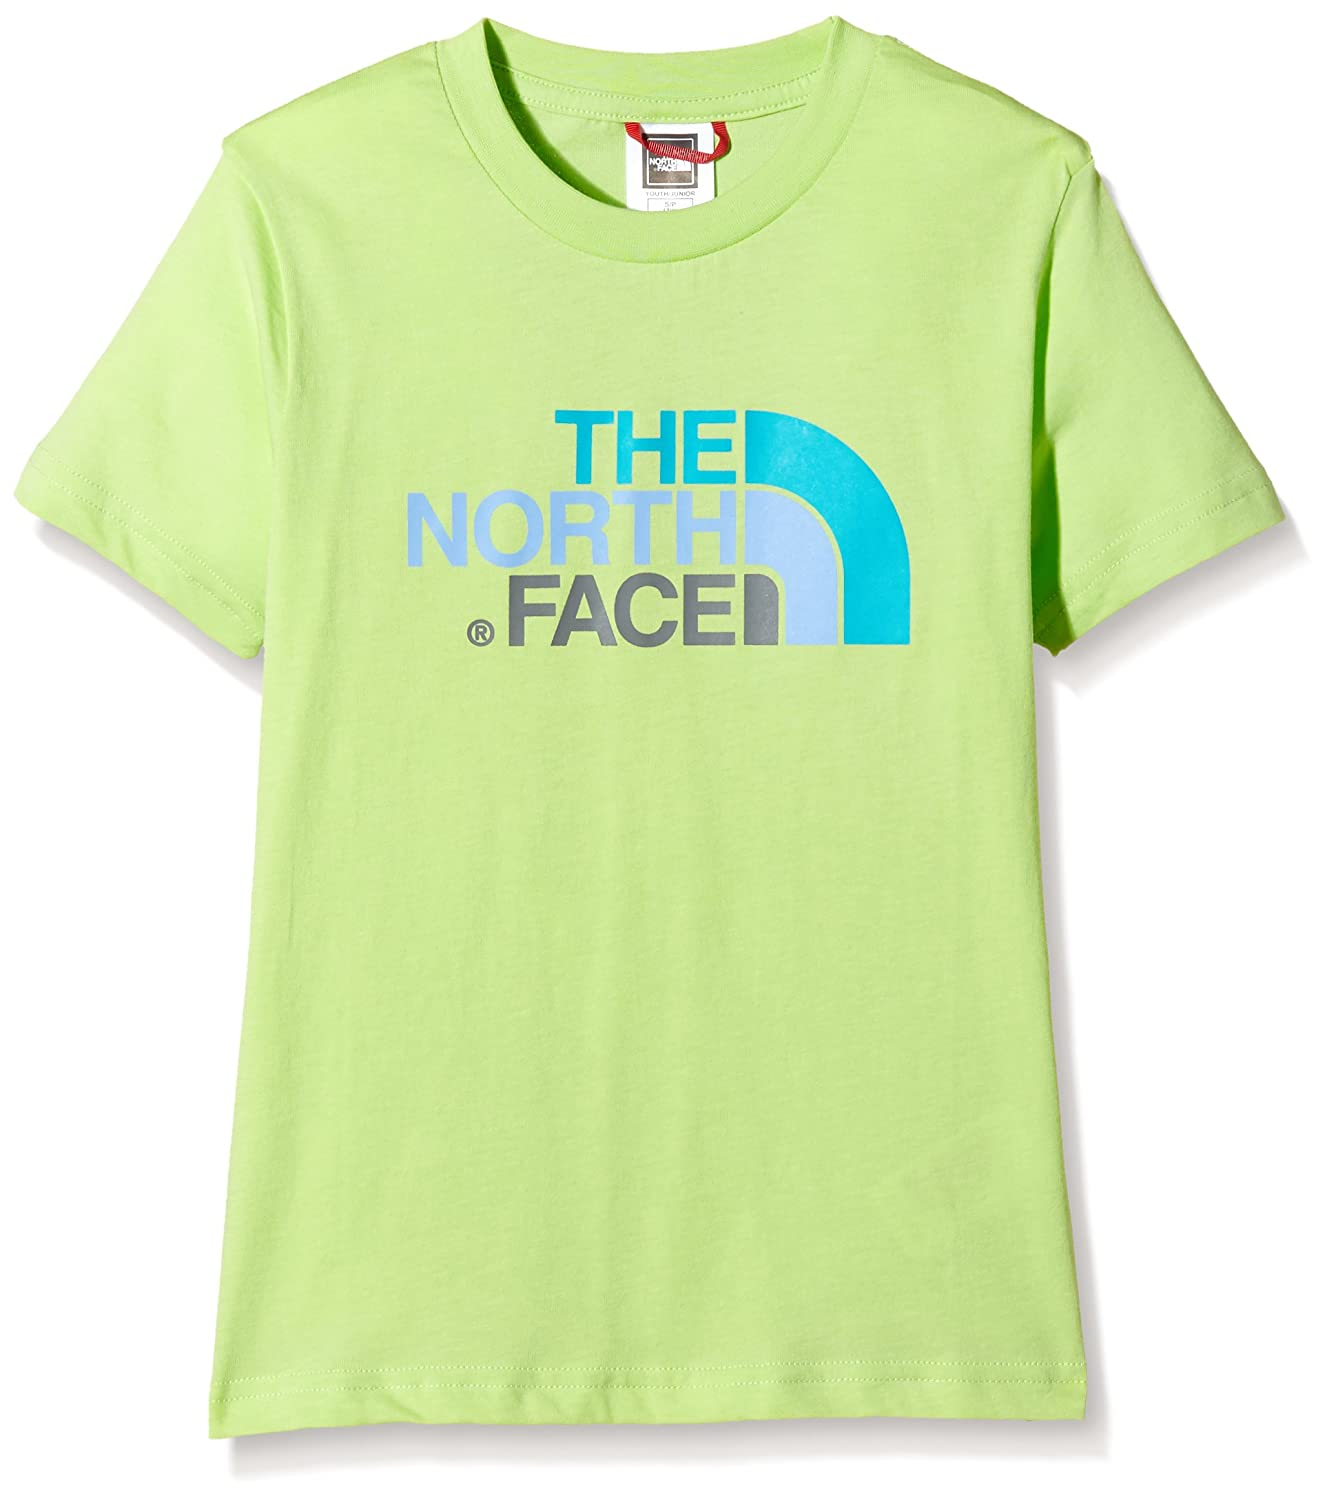 THE NORTH FACE T-Shirt Y S/S Easy tee Camiseta, Bebé-Niños